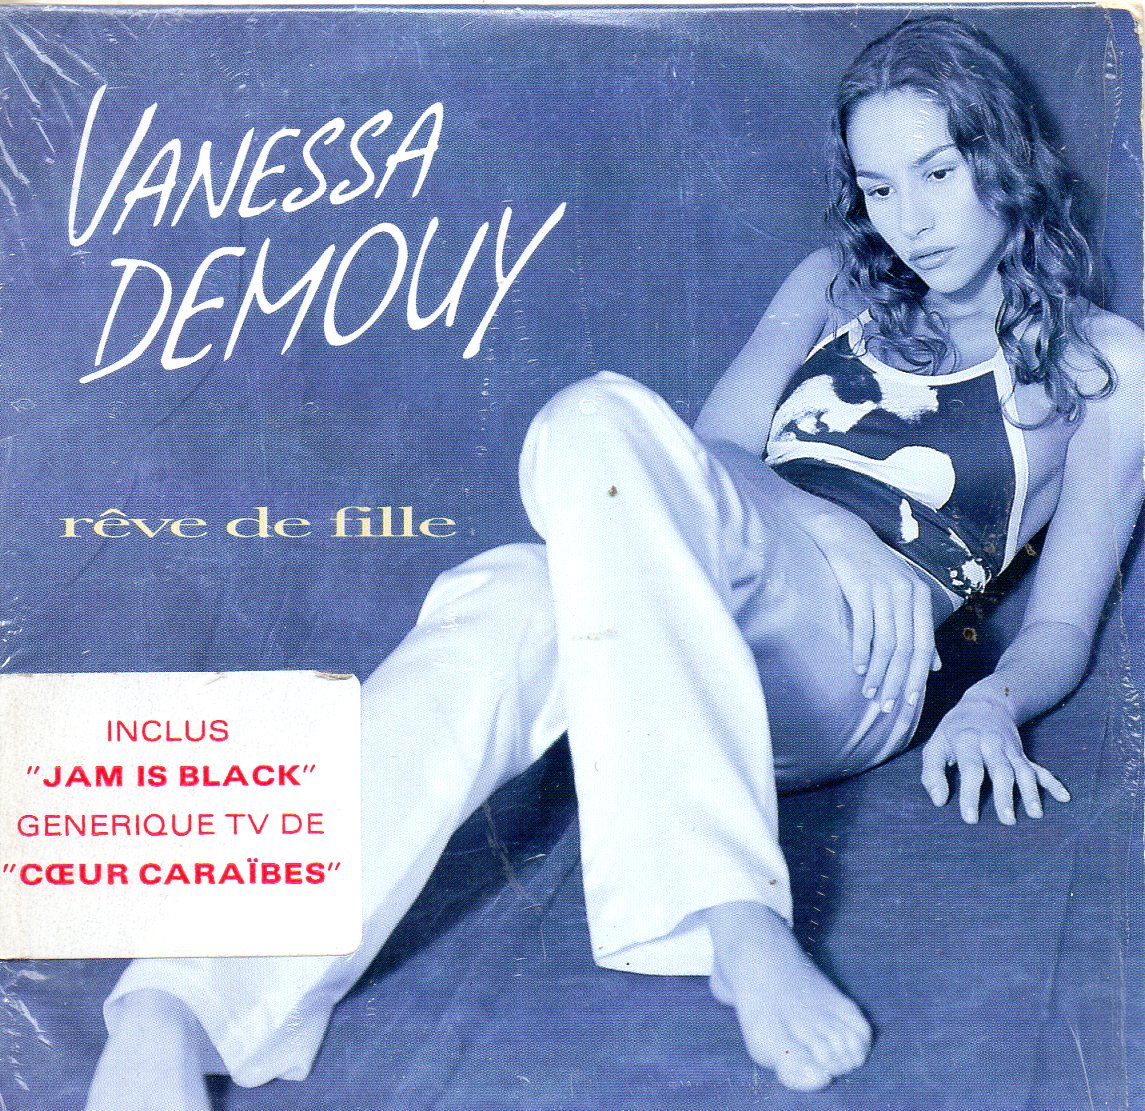 CLASSE MANNEQUIN - VANESSA DEMOUY - CACHOU - CHRIS - Essaye d'imaginer 2-Track CARD SLEEVE - CD single